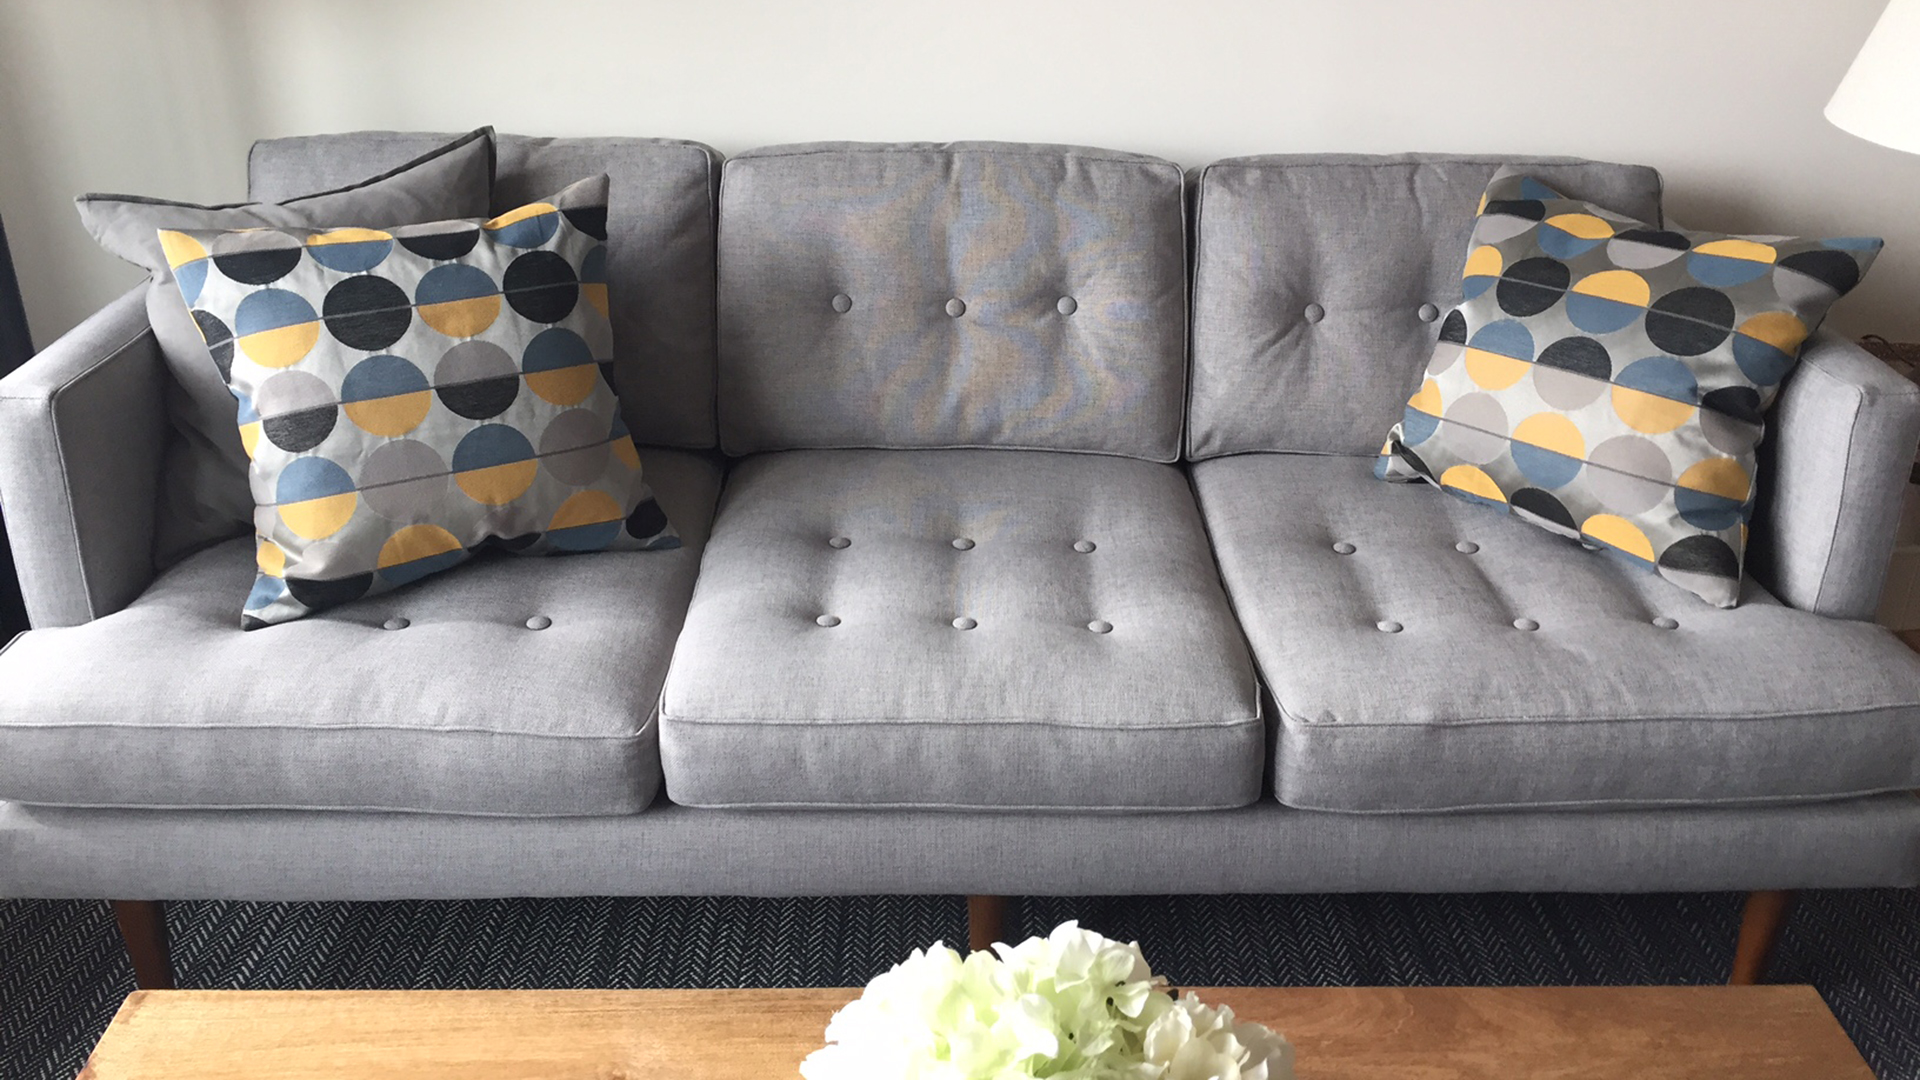 West elm peggy sofa taken off website todaycom for West elm peggy sectional sofa